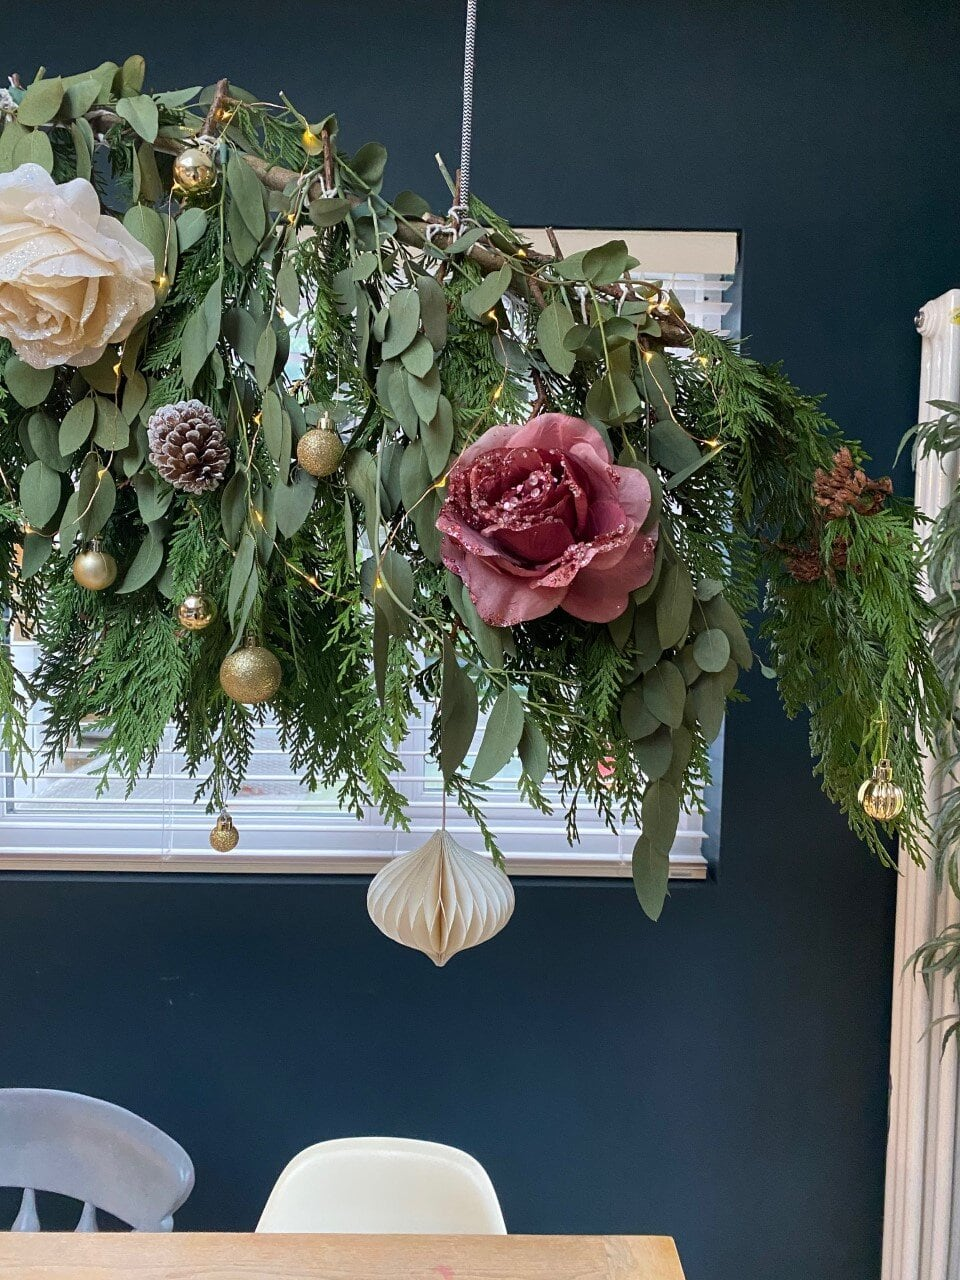 The beautiful floral decorations from ChristmasTimeUK